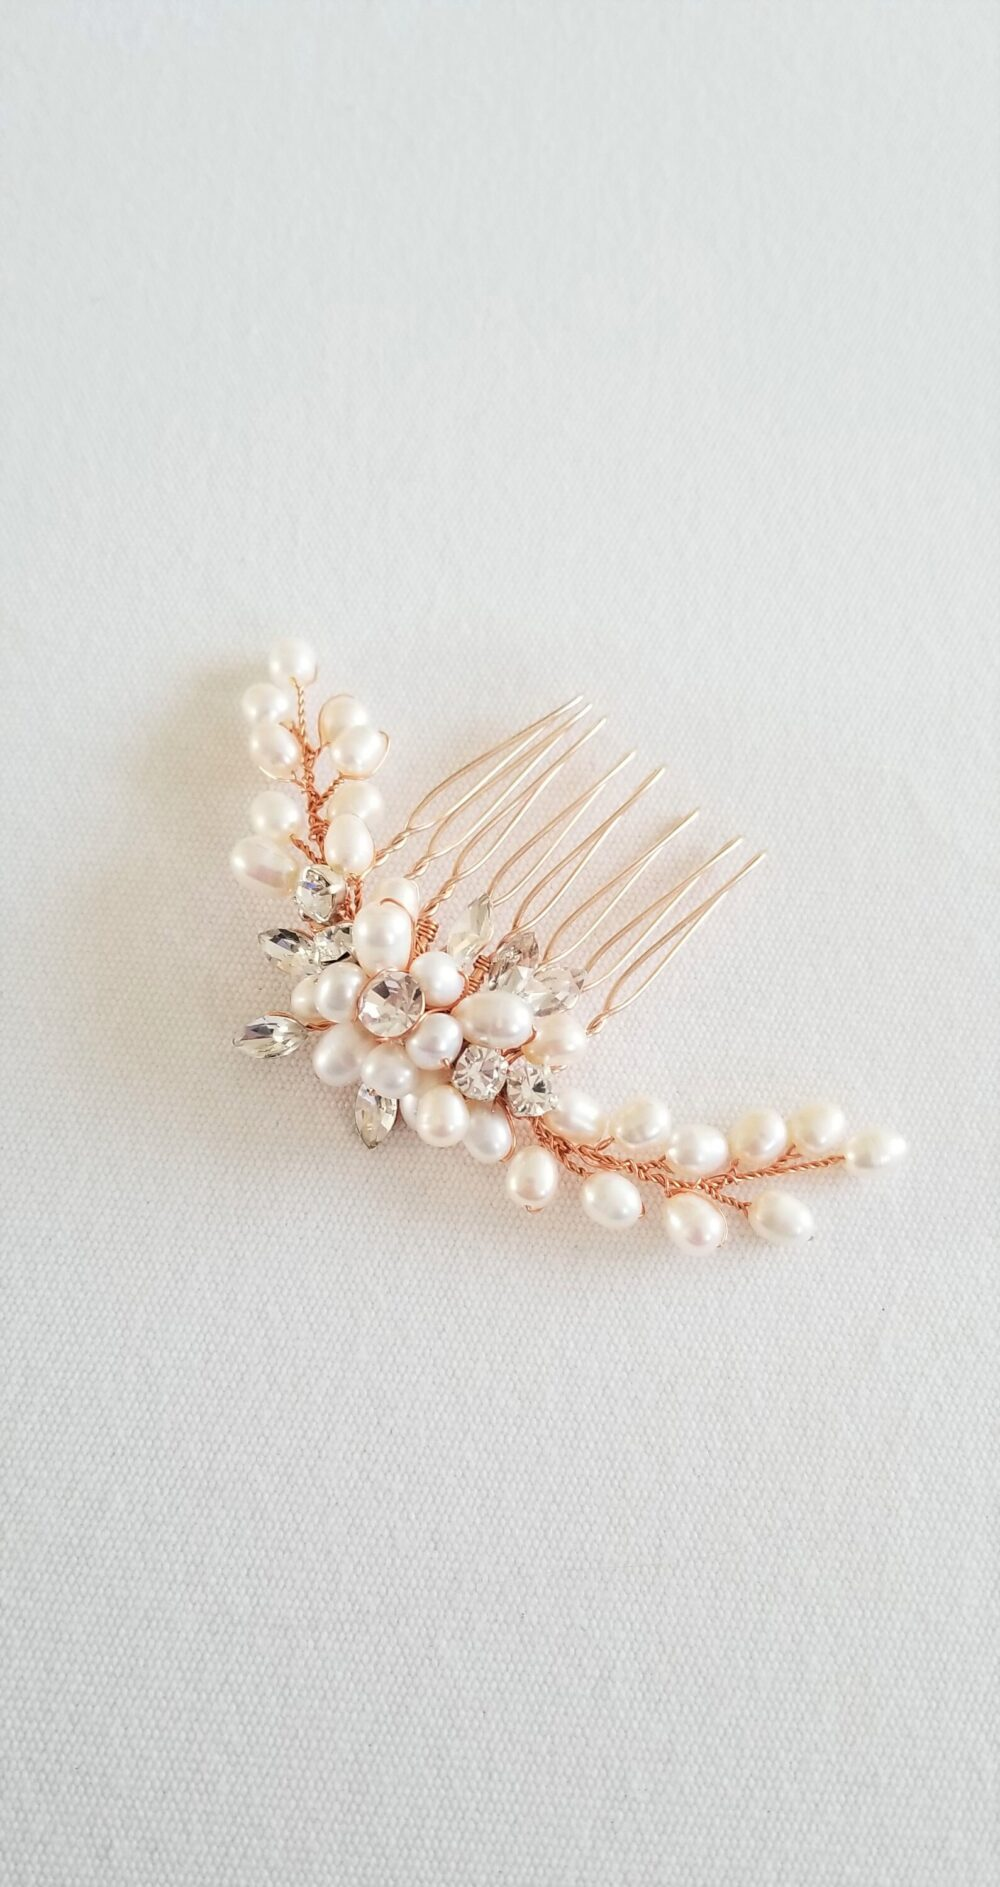 Freshwater Pearl Wedding Hair Comb, Small Crystal Bridal Rose Gold Comb For Bride